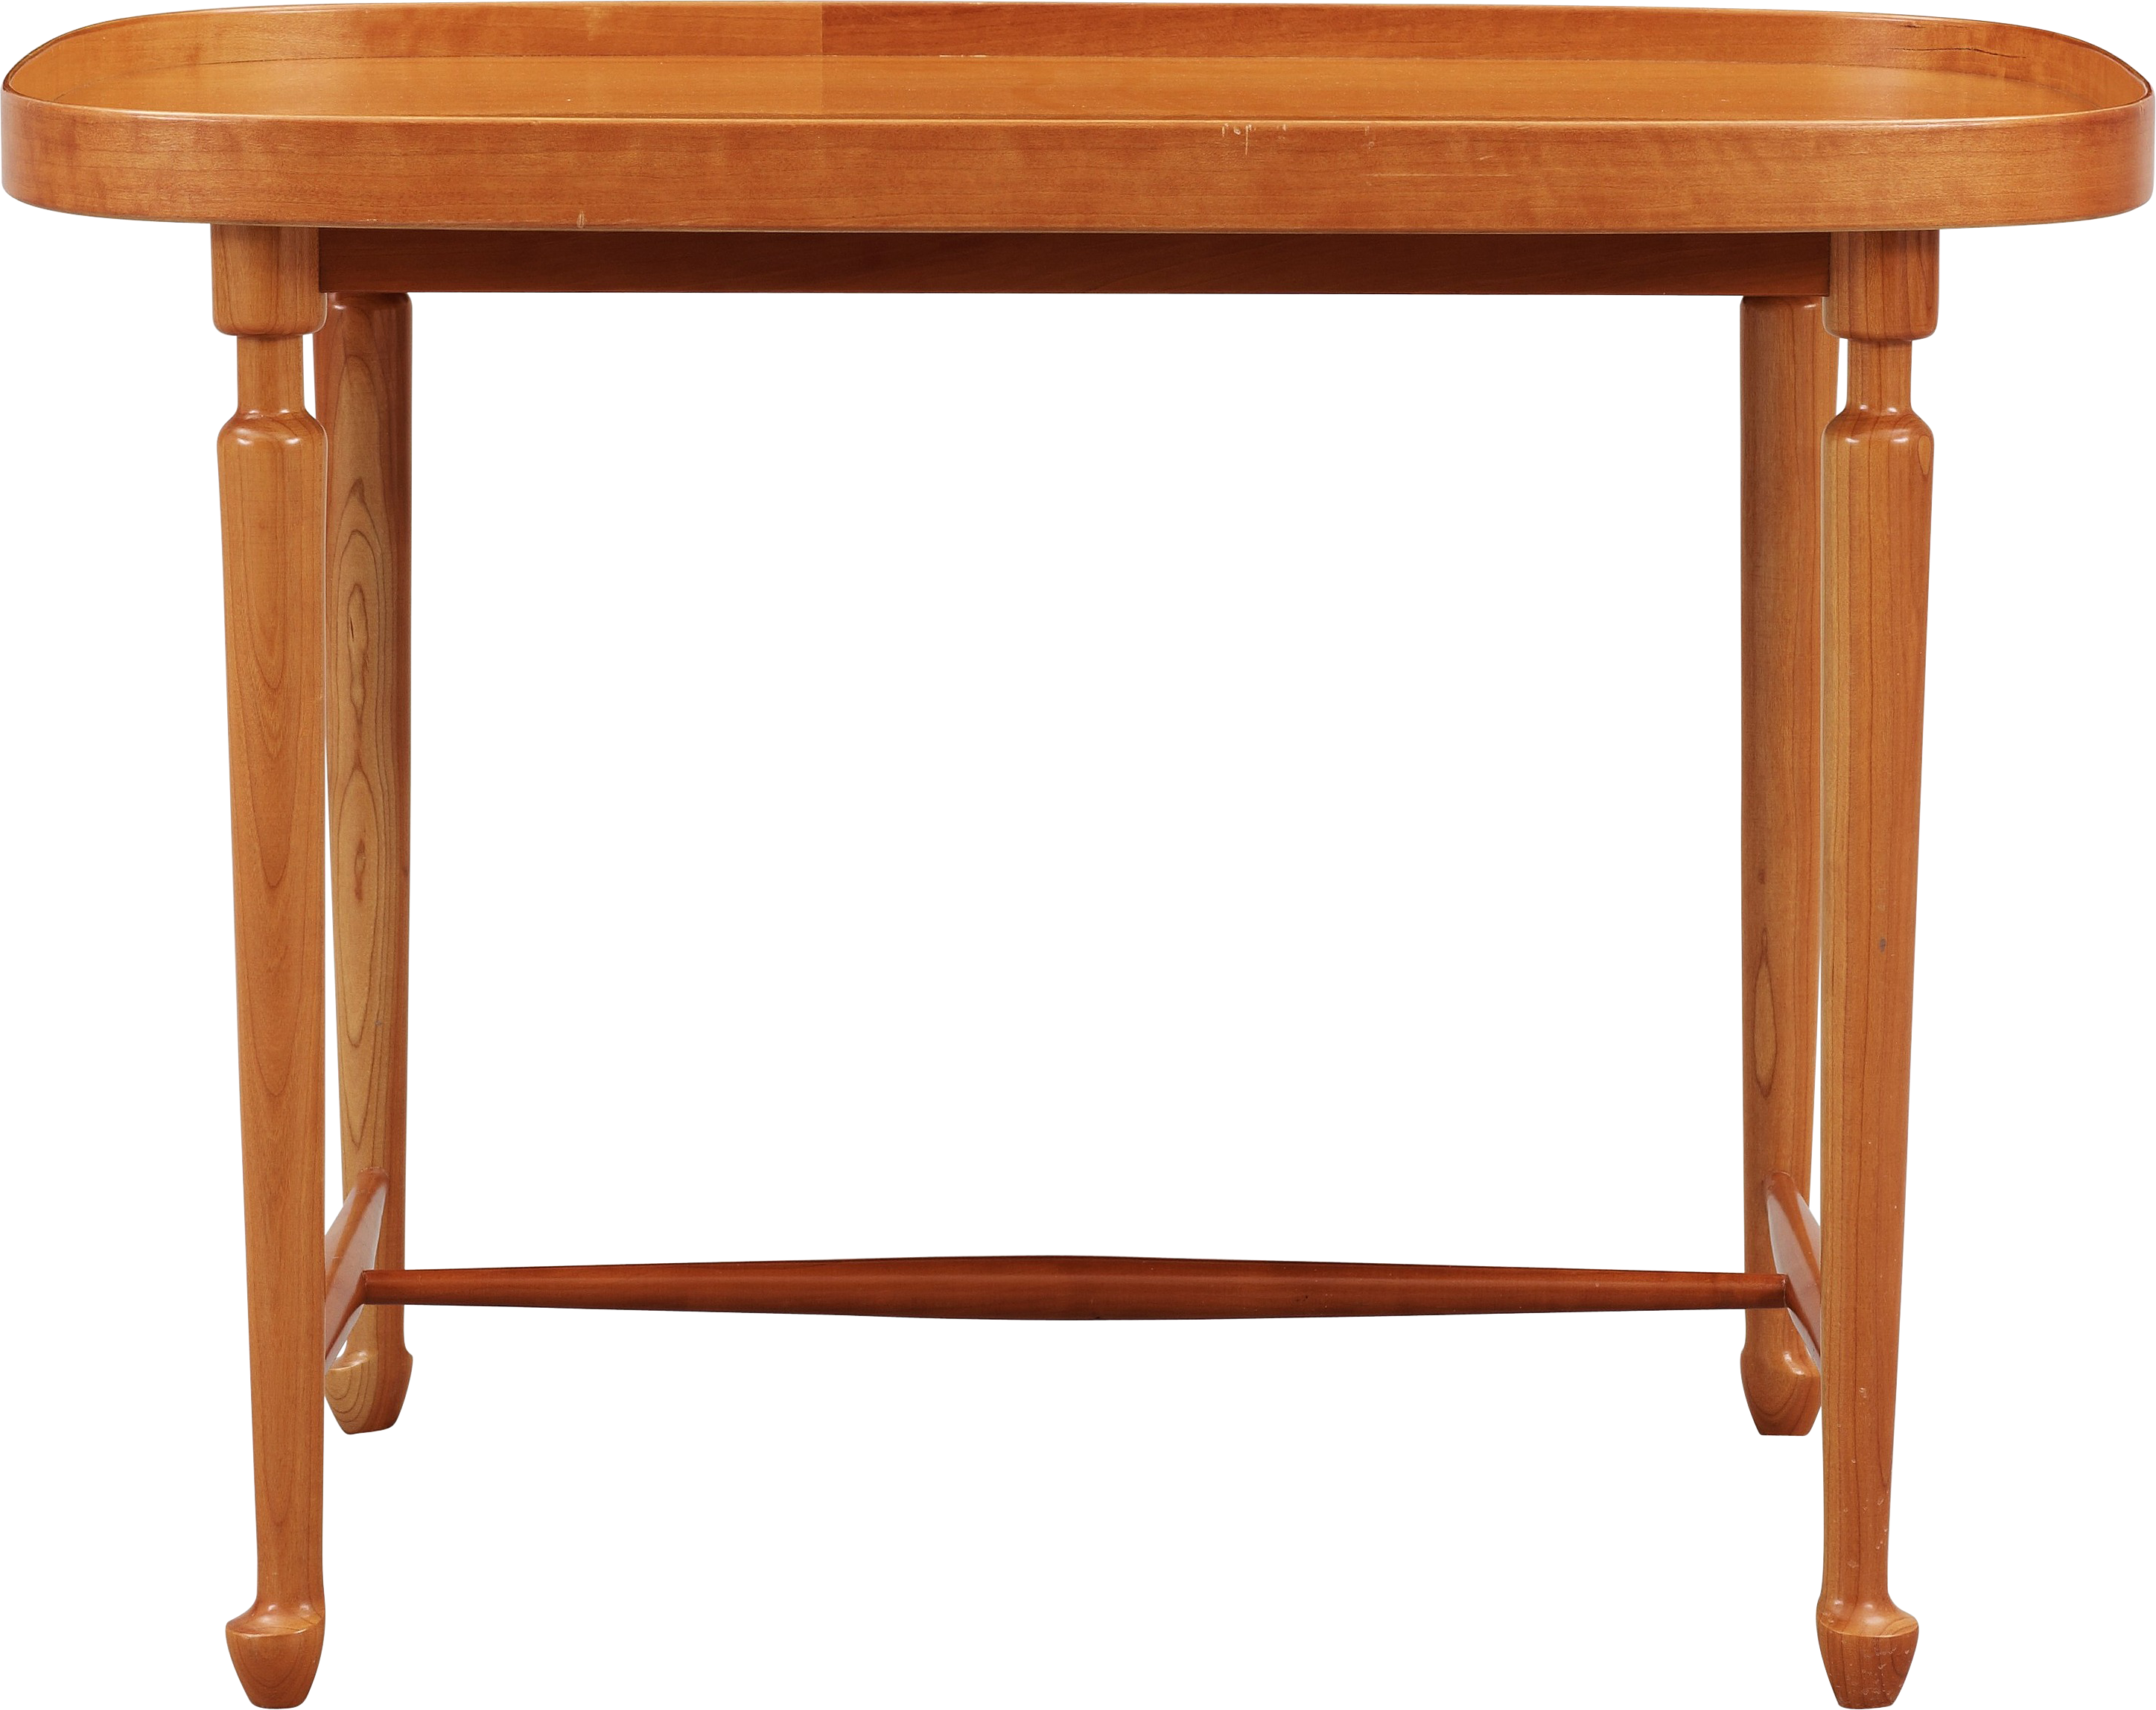 Table png image free. Desk clipart school bench